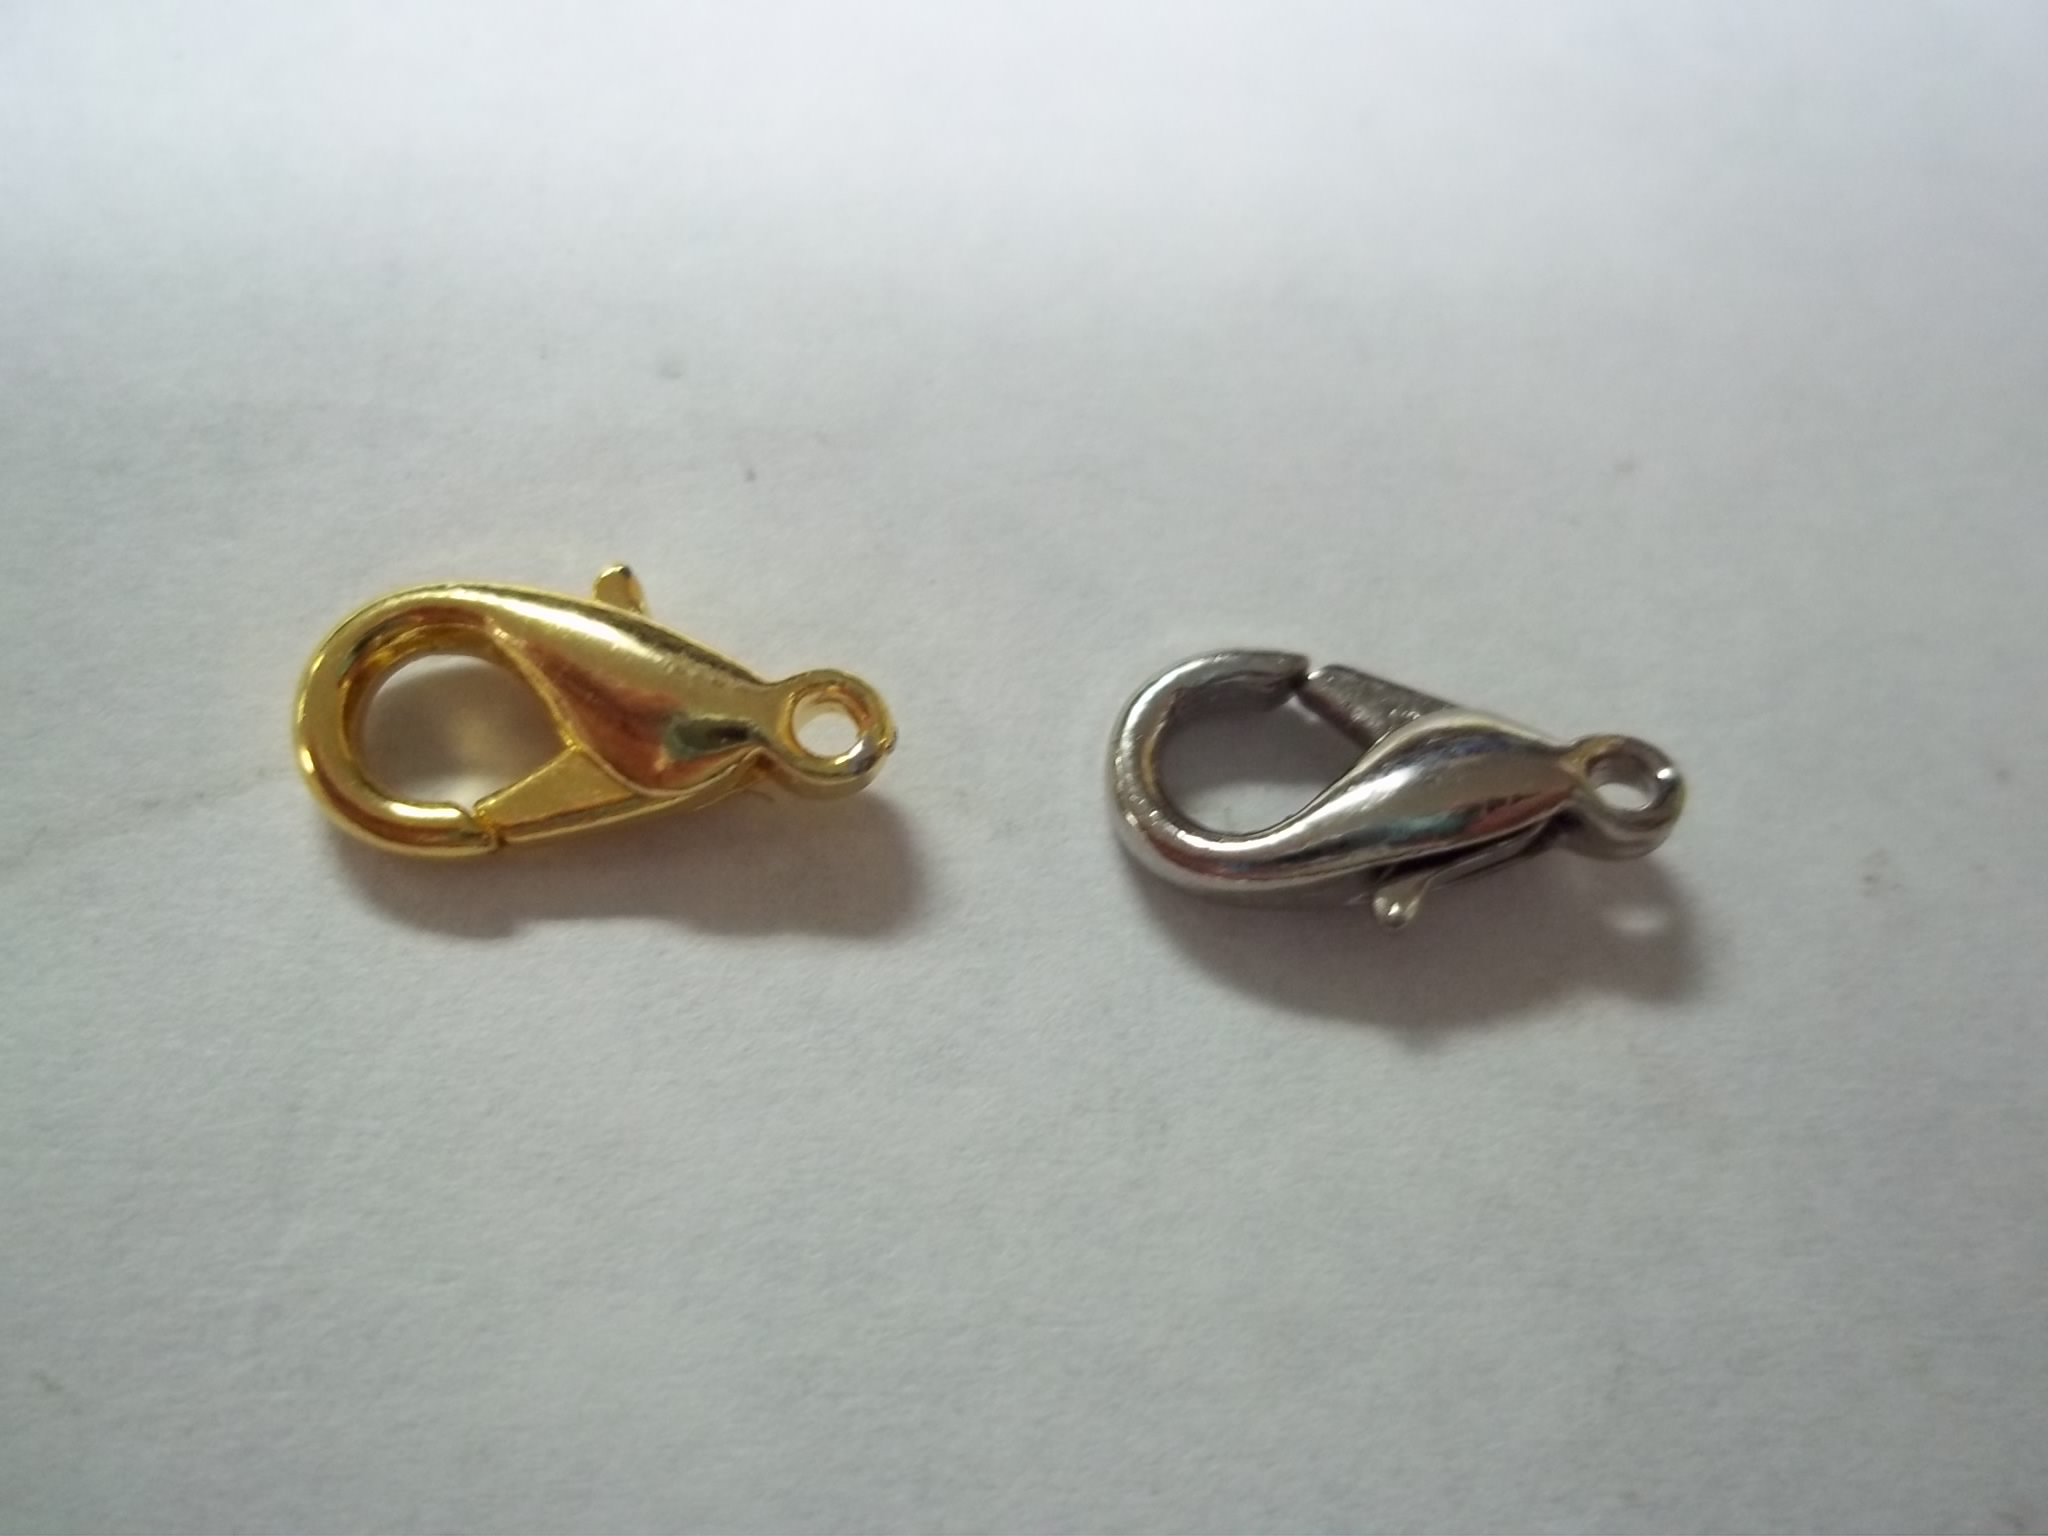 LBC013G Gold Plated Lobster Claw Clasp